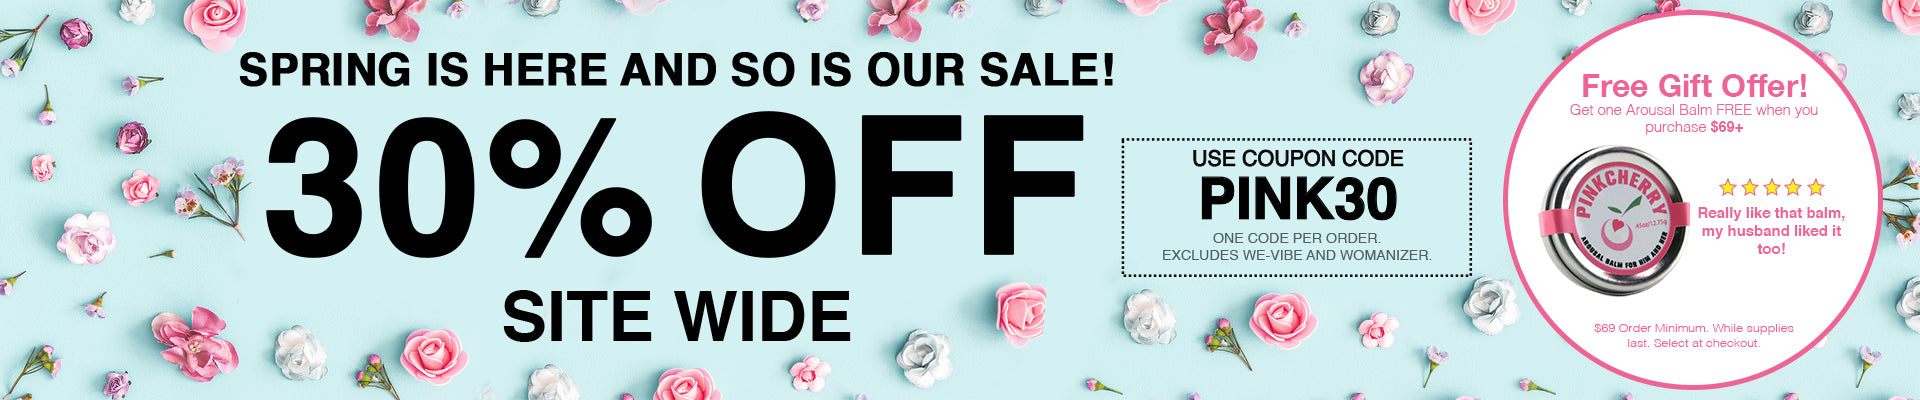 30% Off Site Wide - Use Code PINK30